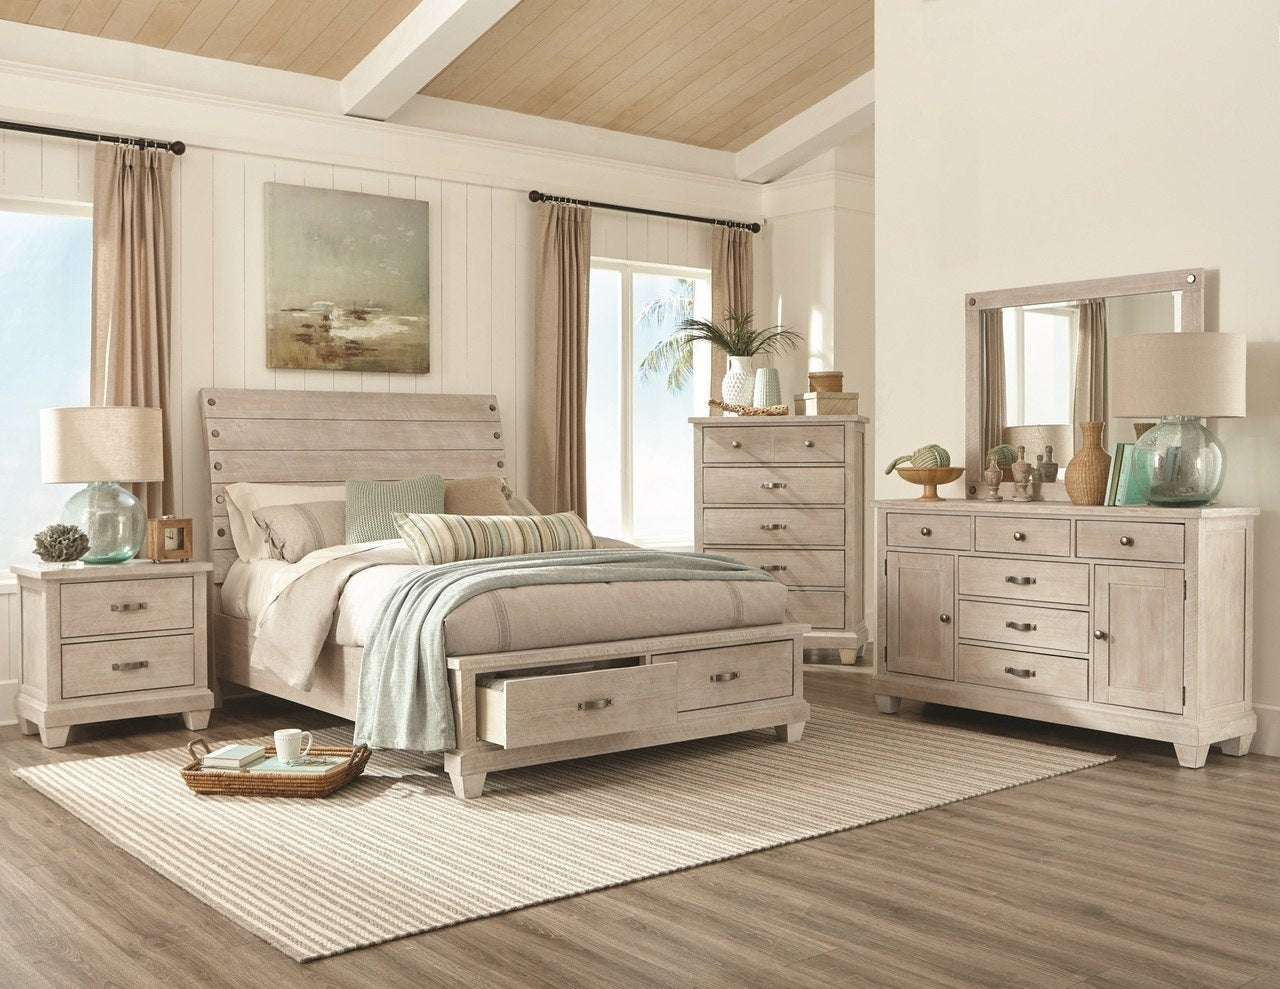 Picture of: White Wash Country King Bedroom Set My Furniture Place